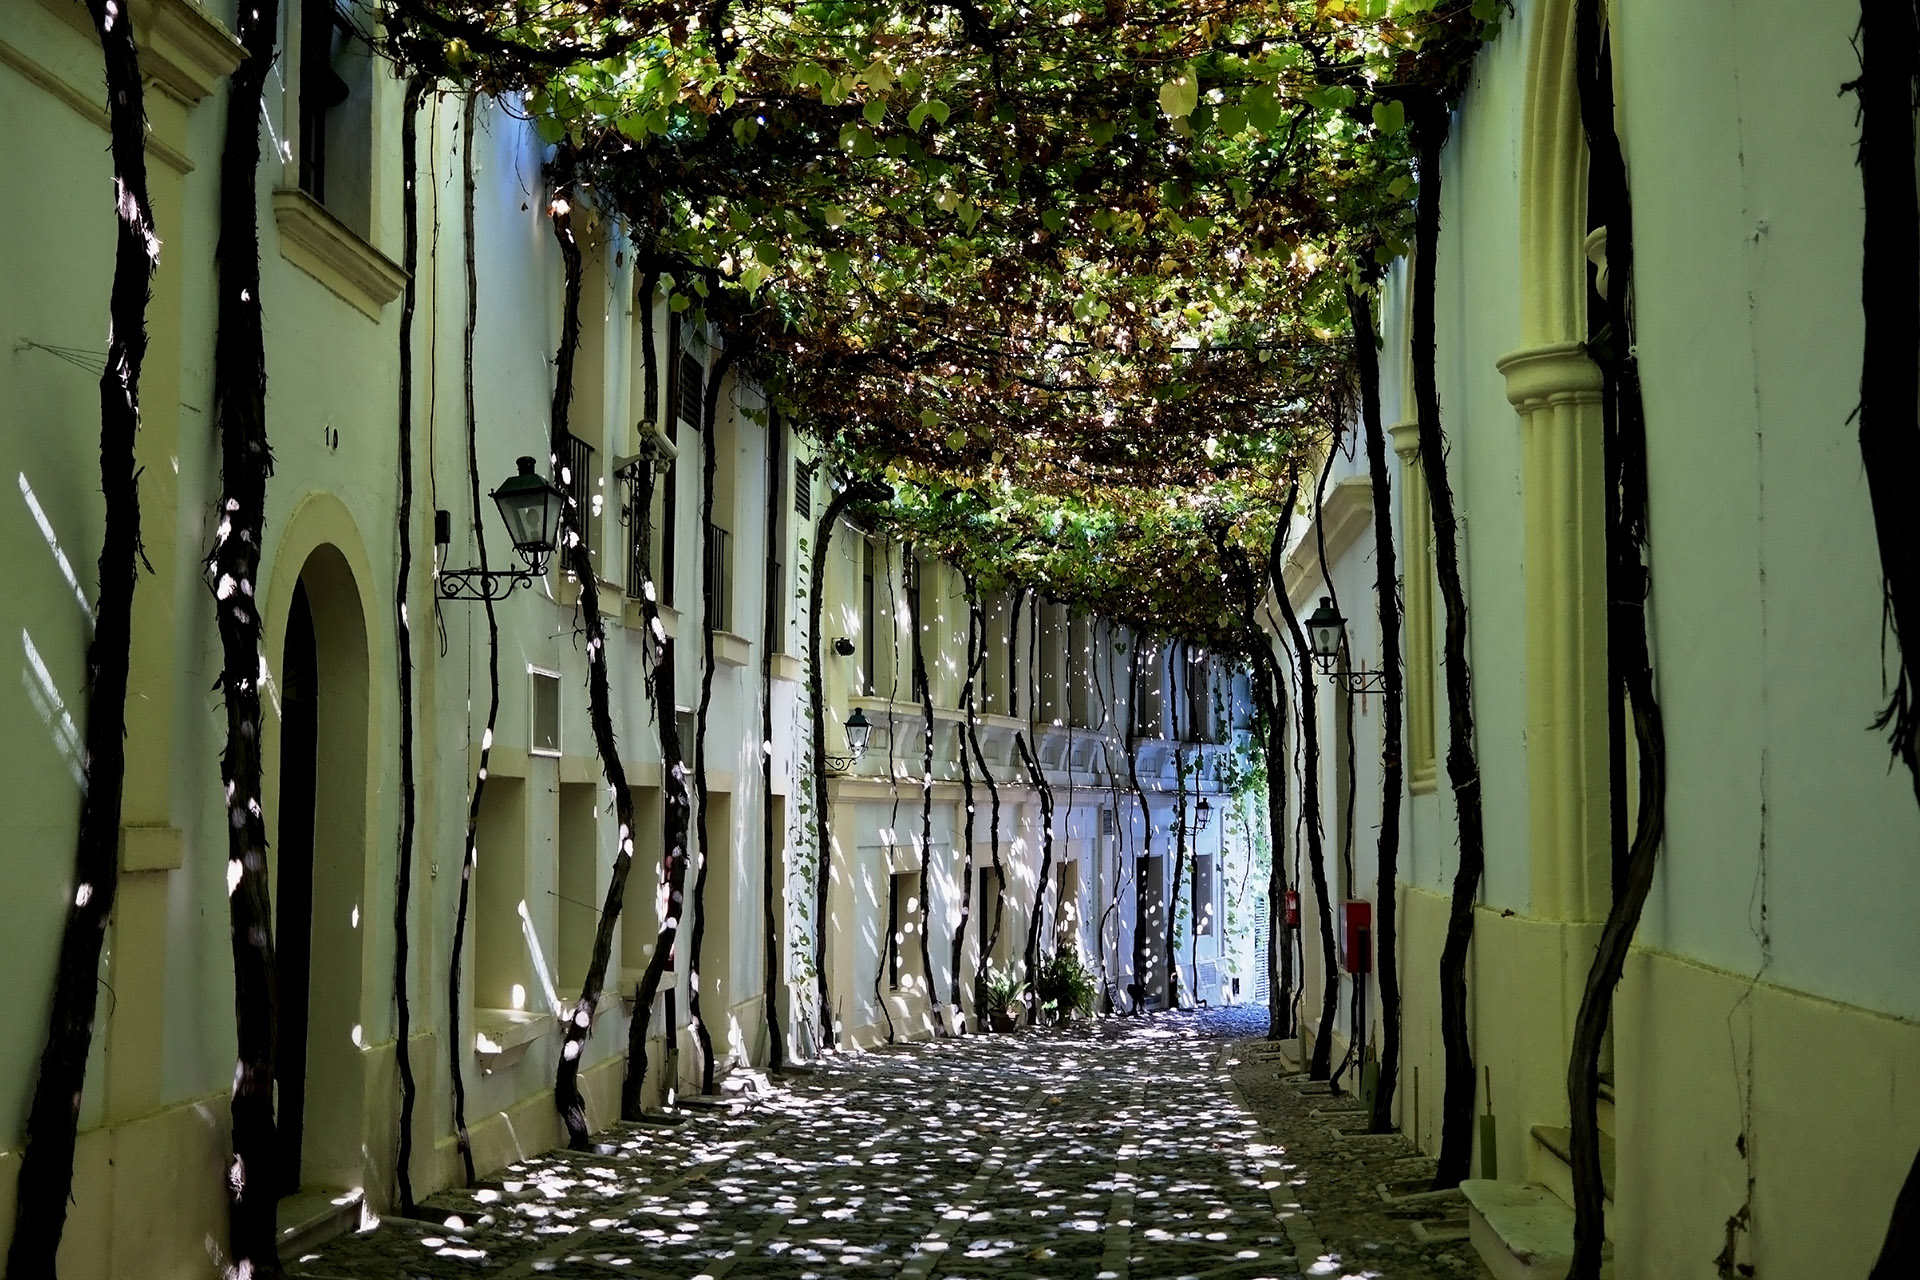 Alleyway covered by grape vines, sunlight peeking through